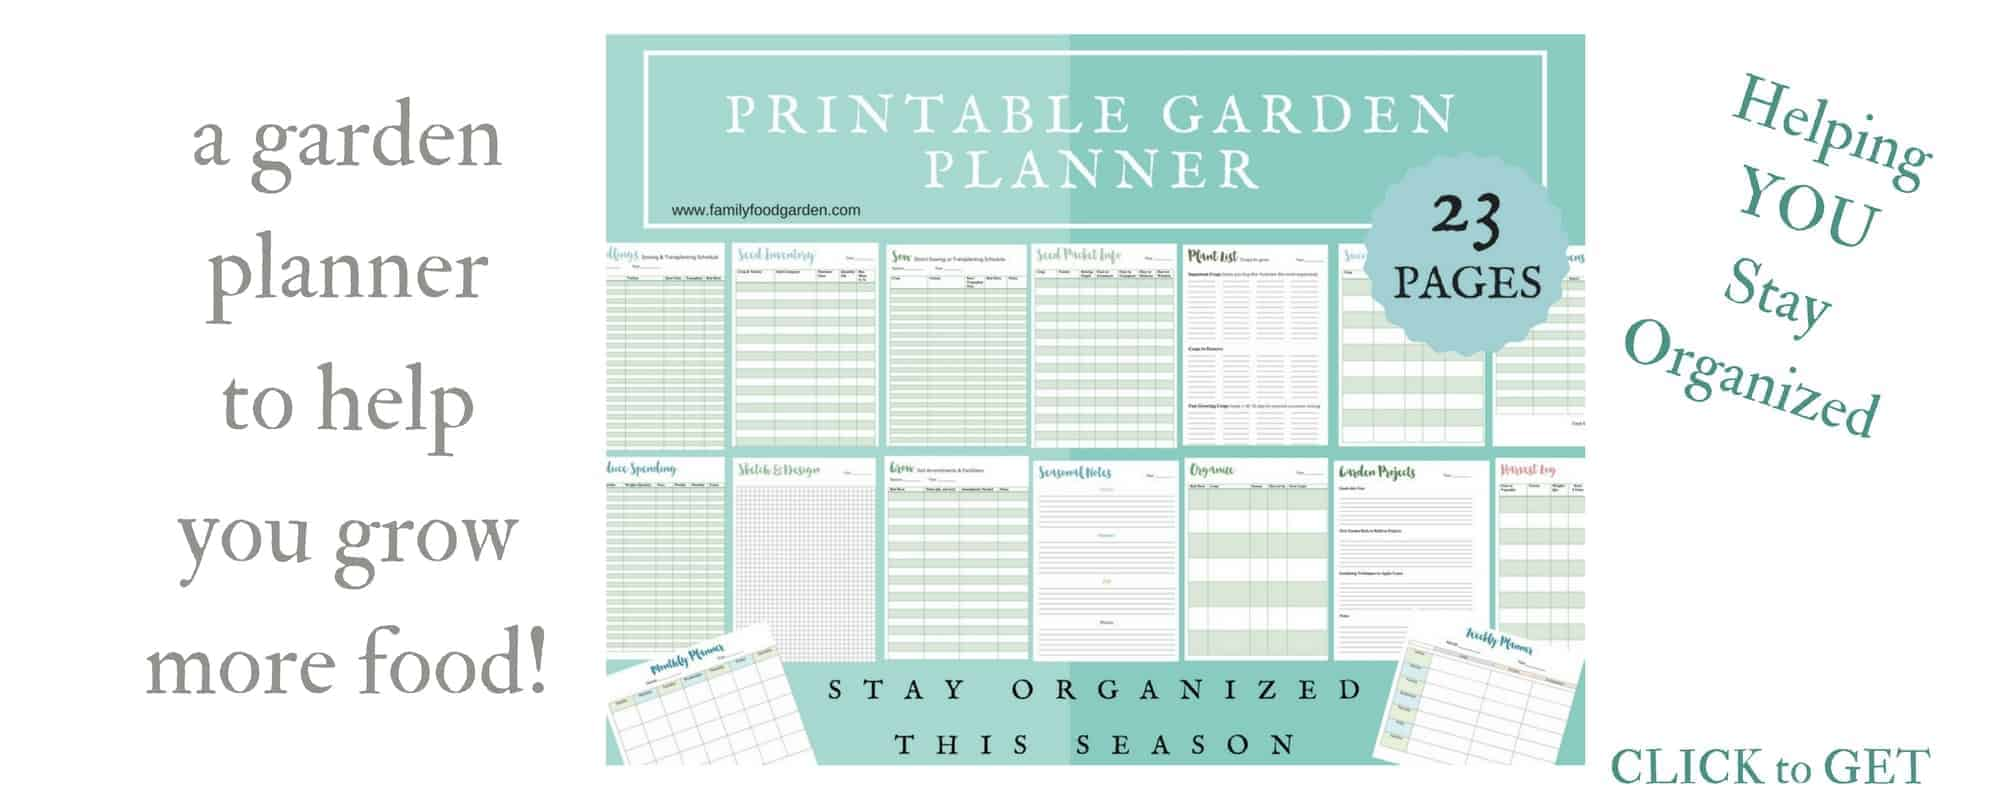 my garden planner free download